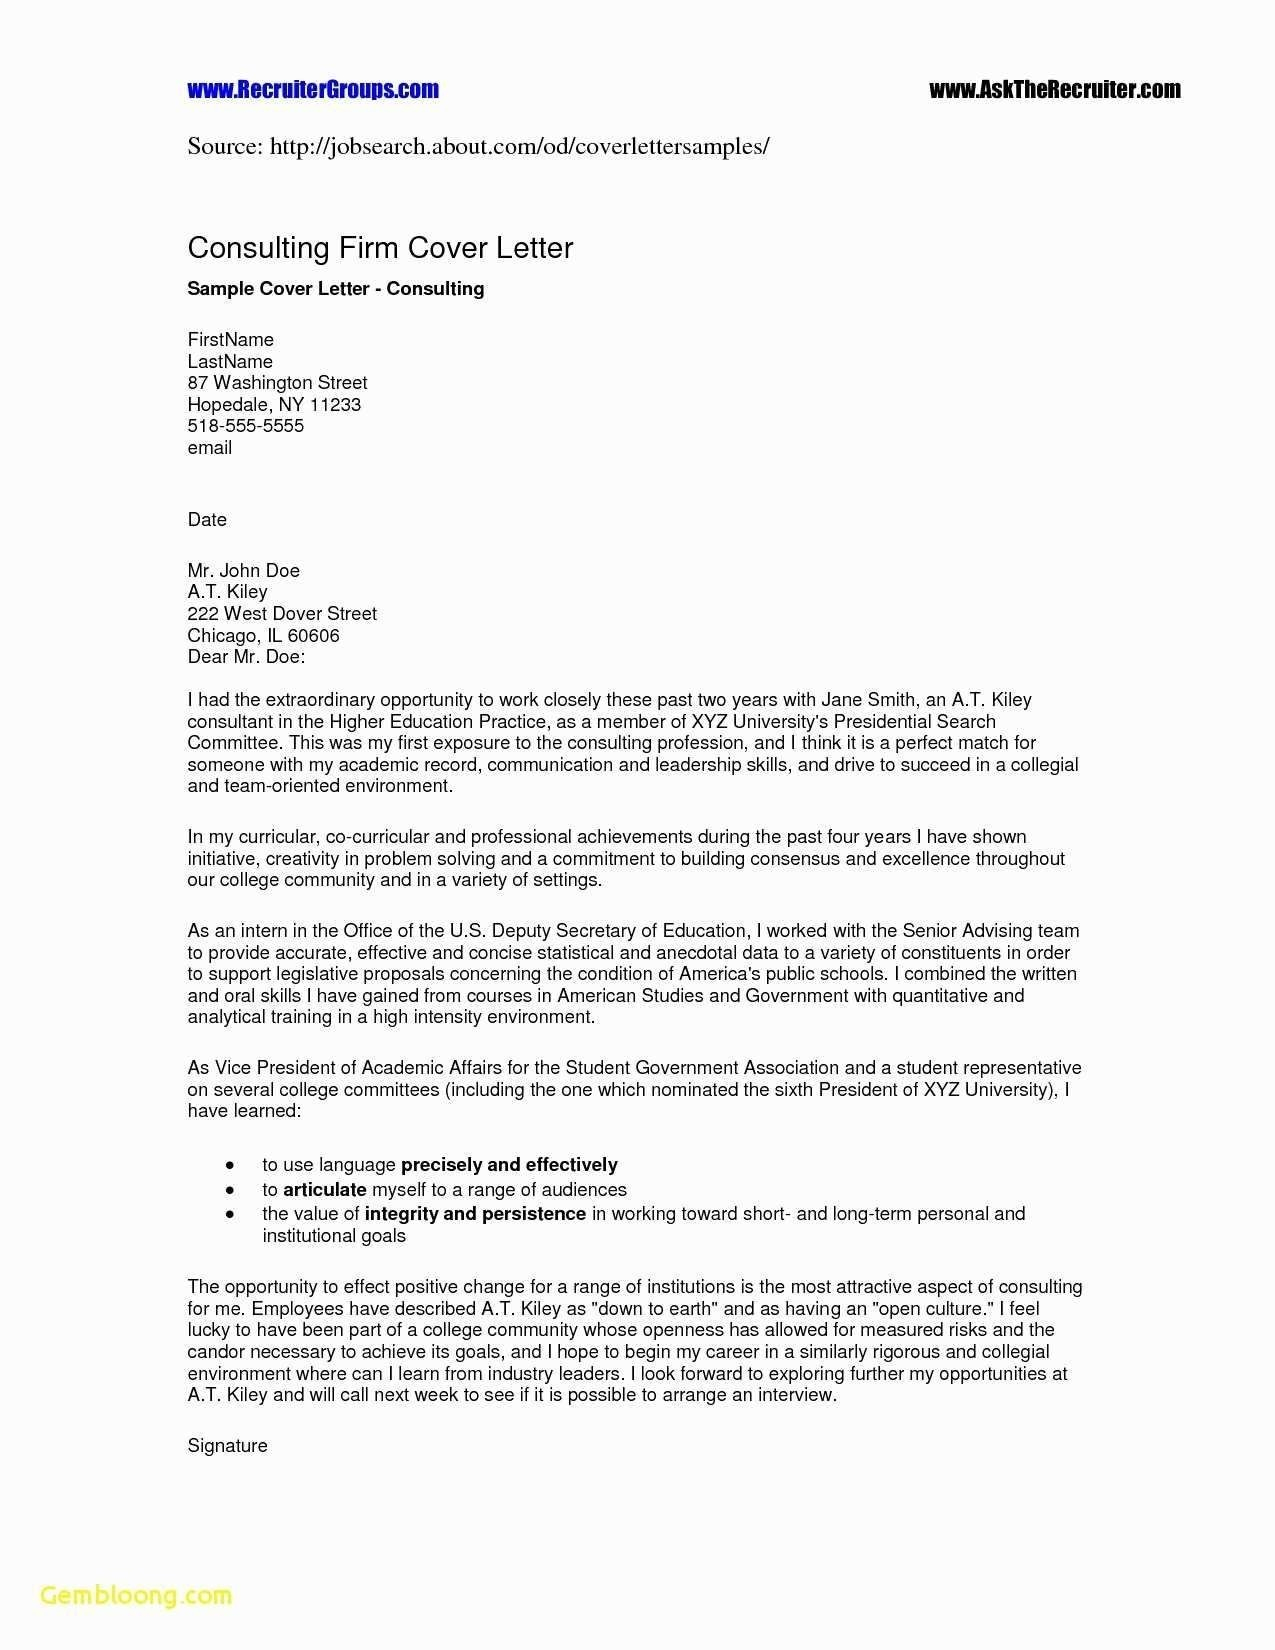 Cover Letter Template Fill In - Best Cover Letter for It Job Fresh Whats A Resume Best Fresh Cover